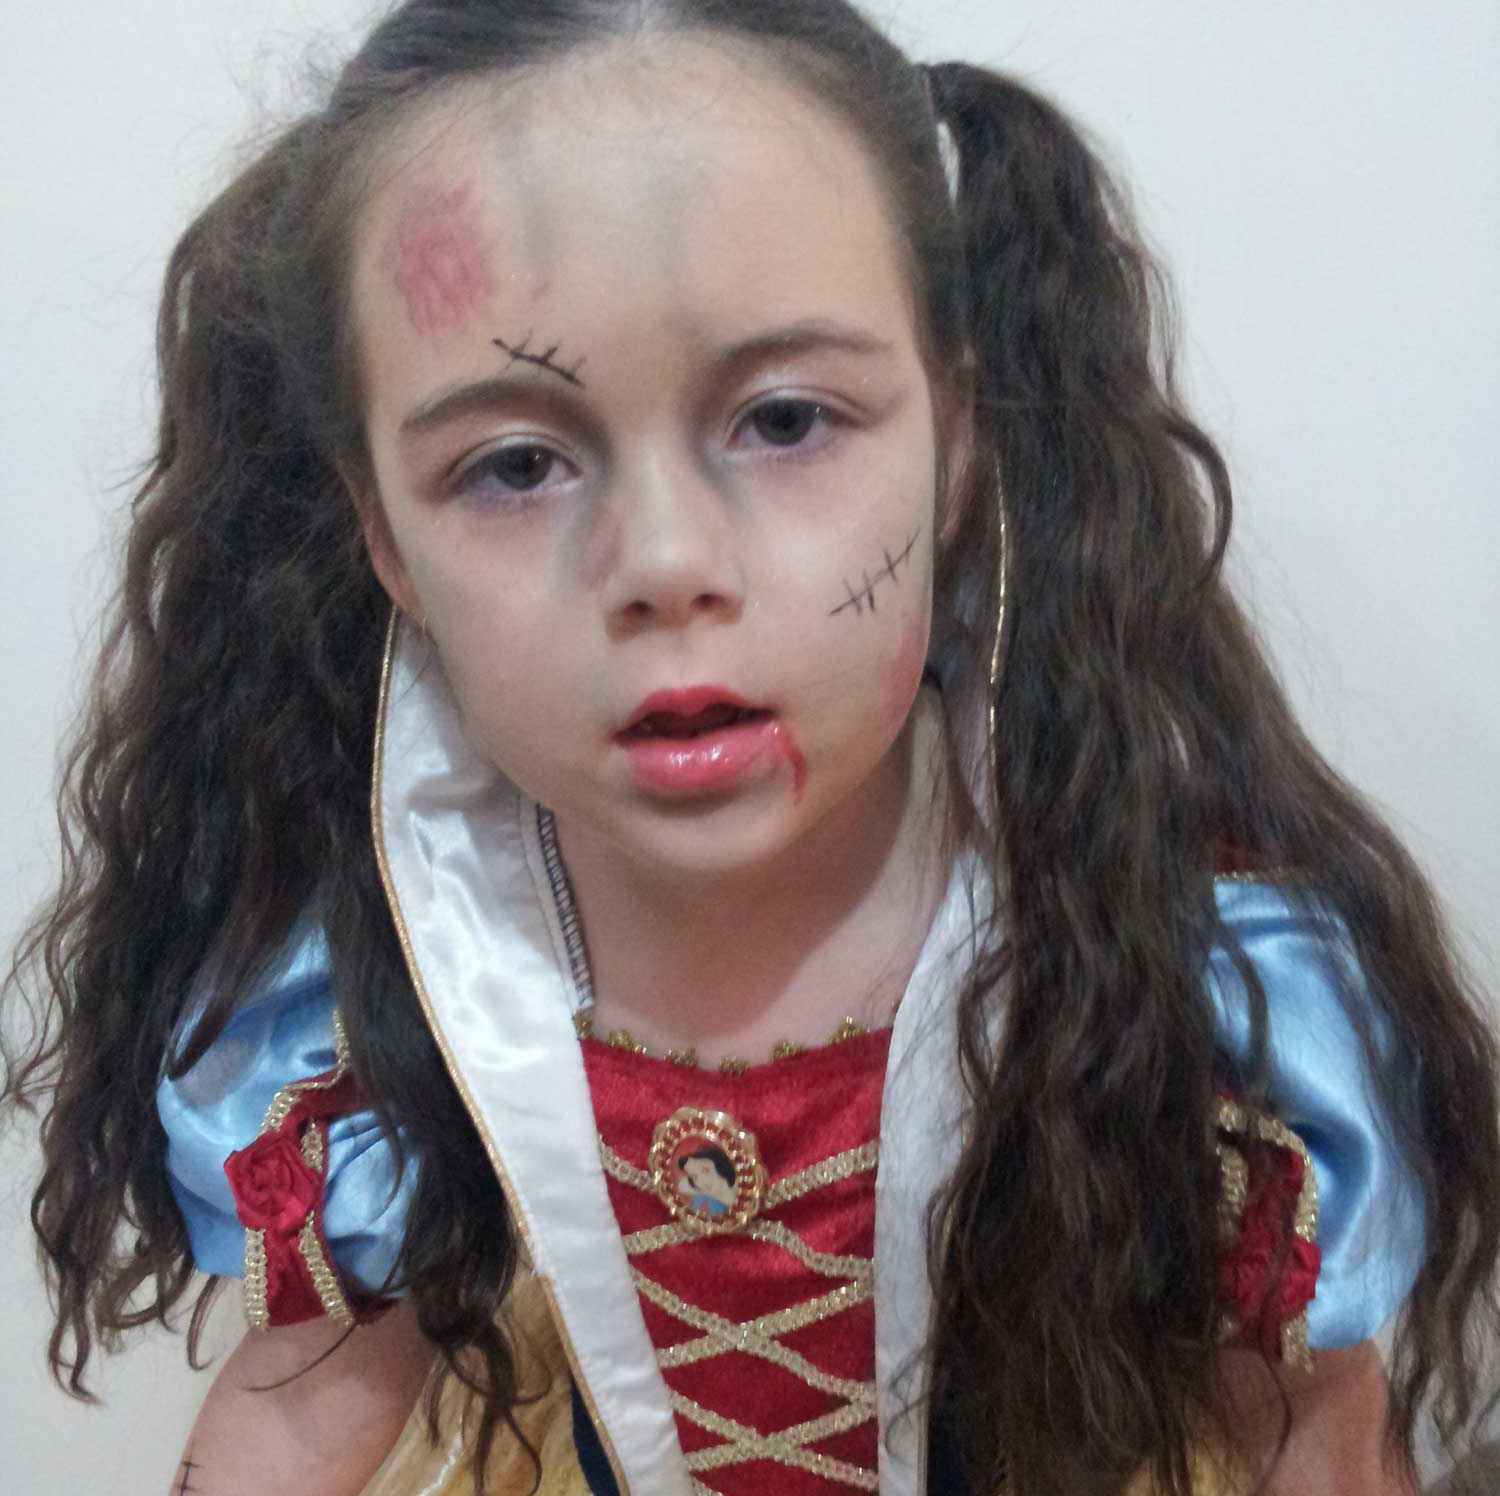 Tookii things to do with kids halloween dress ups one of the activities for kids